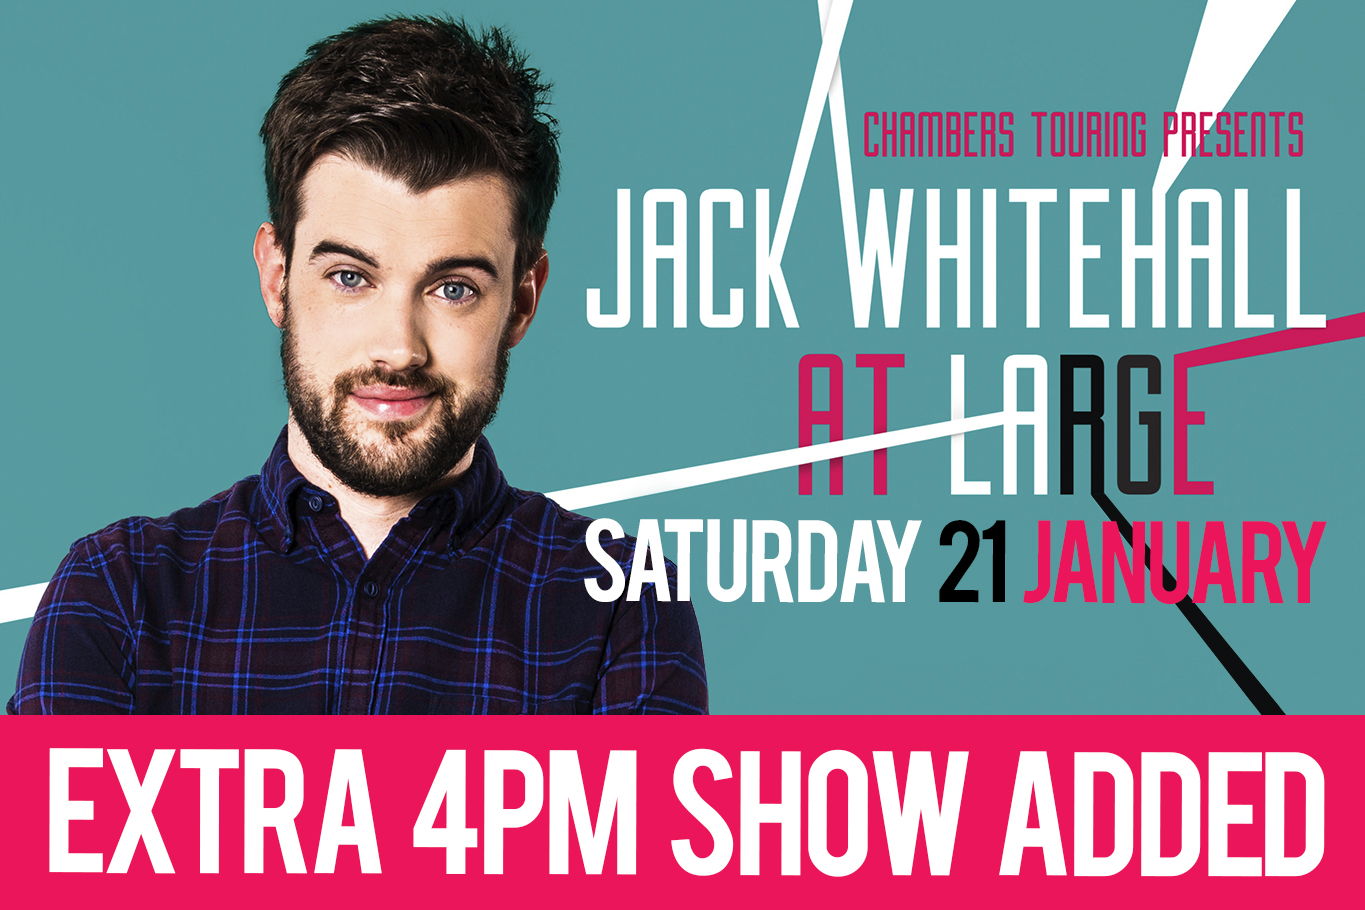 Jack Whitehall Plymouth Pavilions